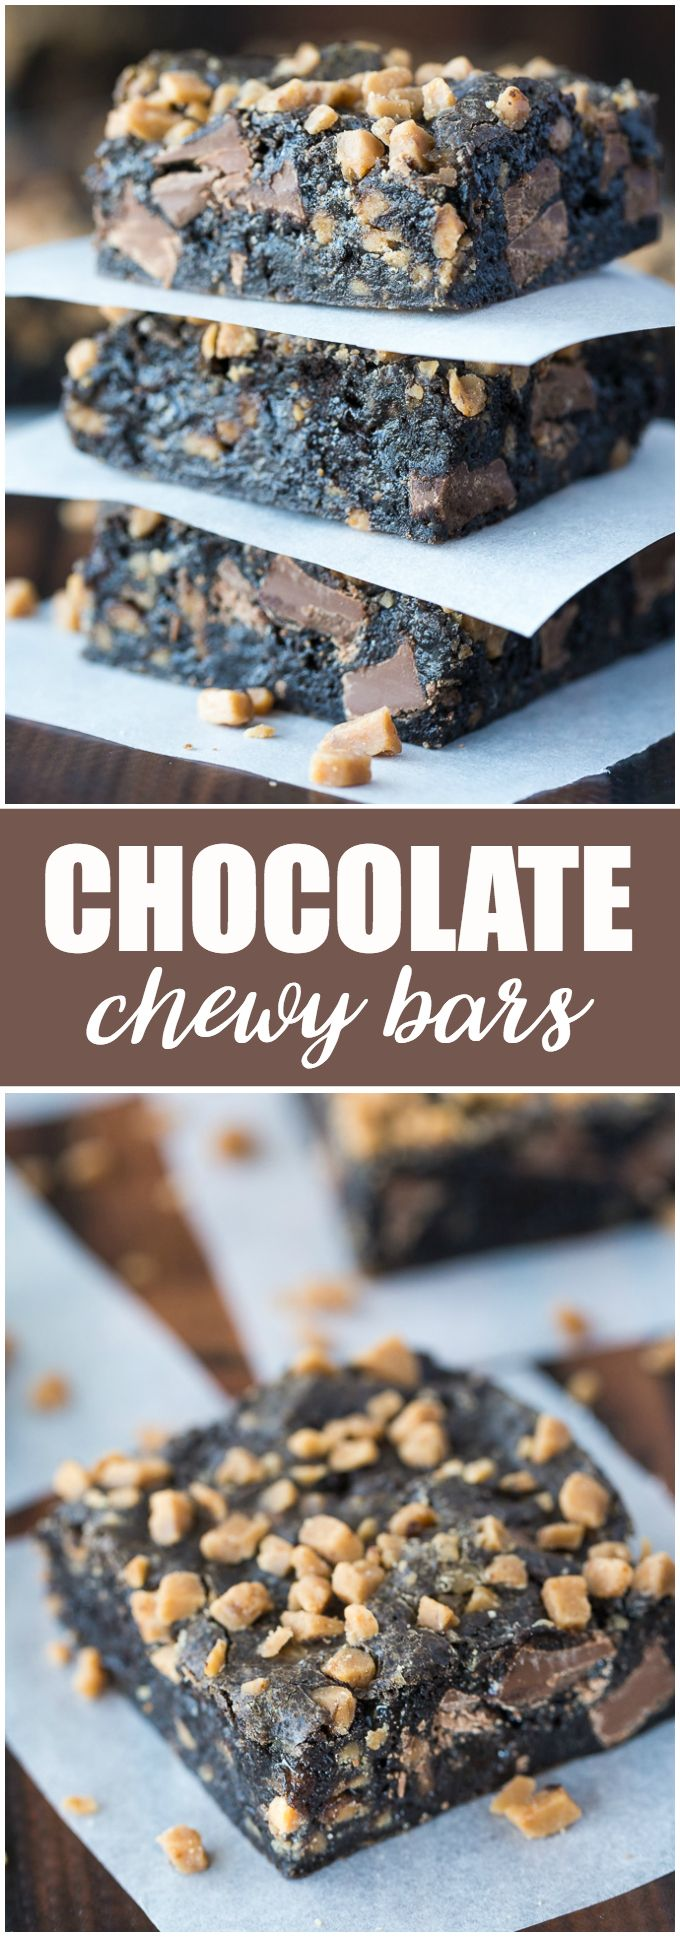 Chocolate Chewy Bars - Only four ingredients in these simple, sweet bars. You'll love how good they taste and easy they are to make!